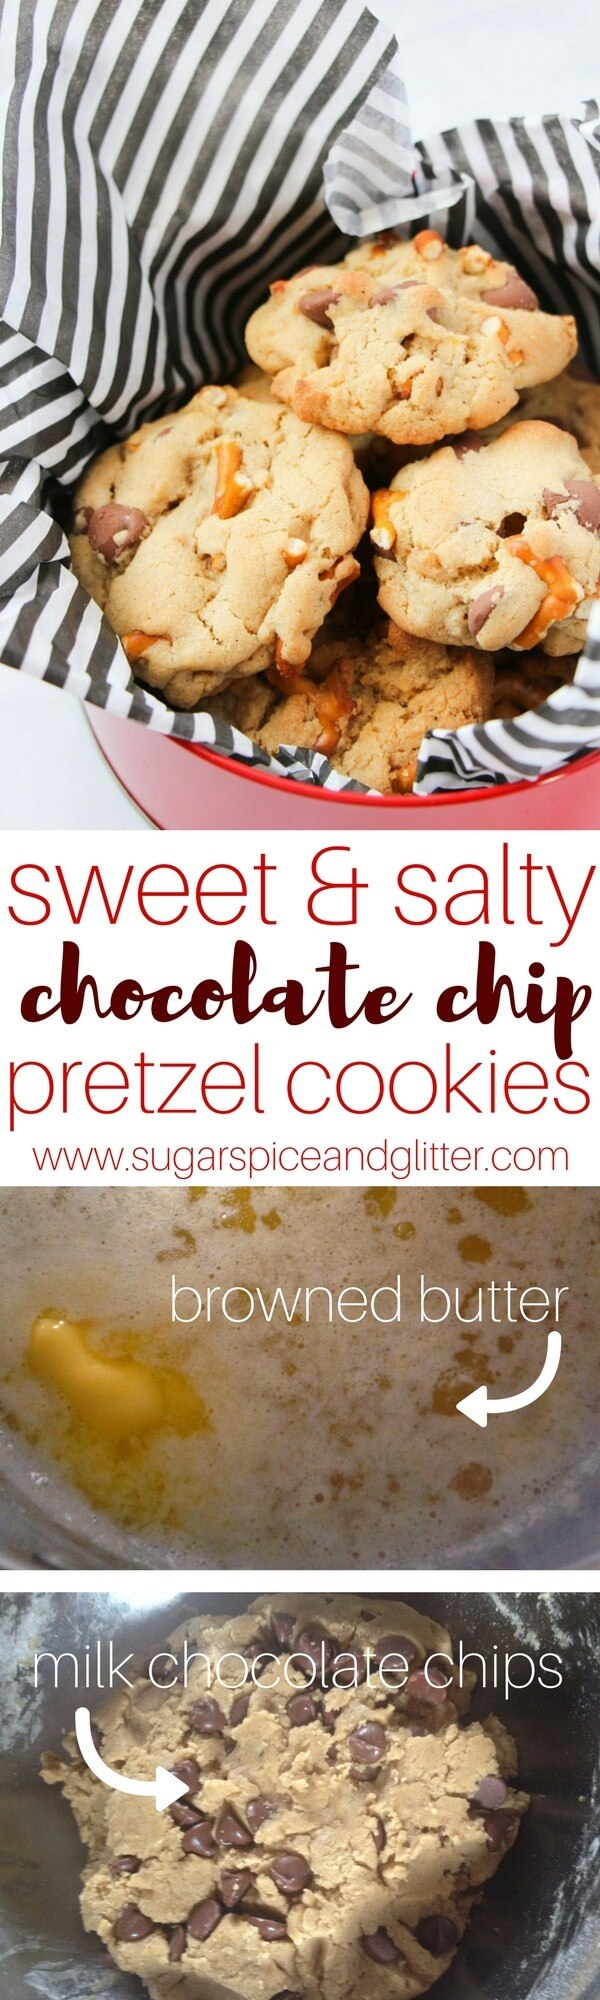 Salty-Sweet Pretzel Chocolate Chip Cookies are the perfect salty and sweet dessert - and perfect for gift giving!